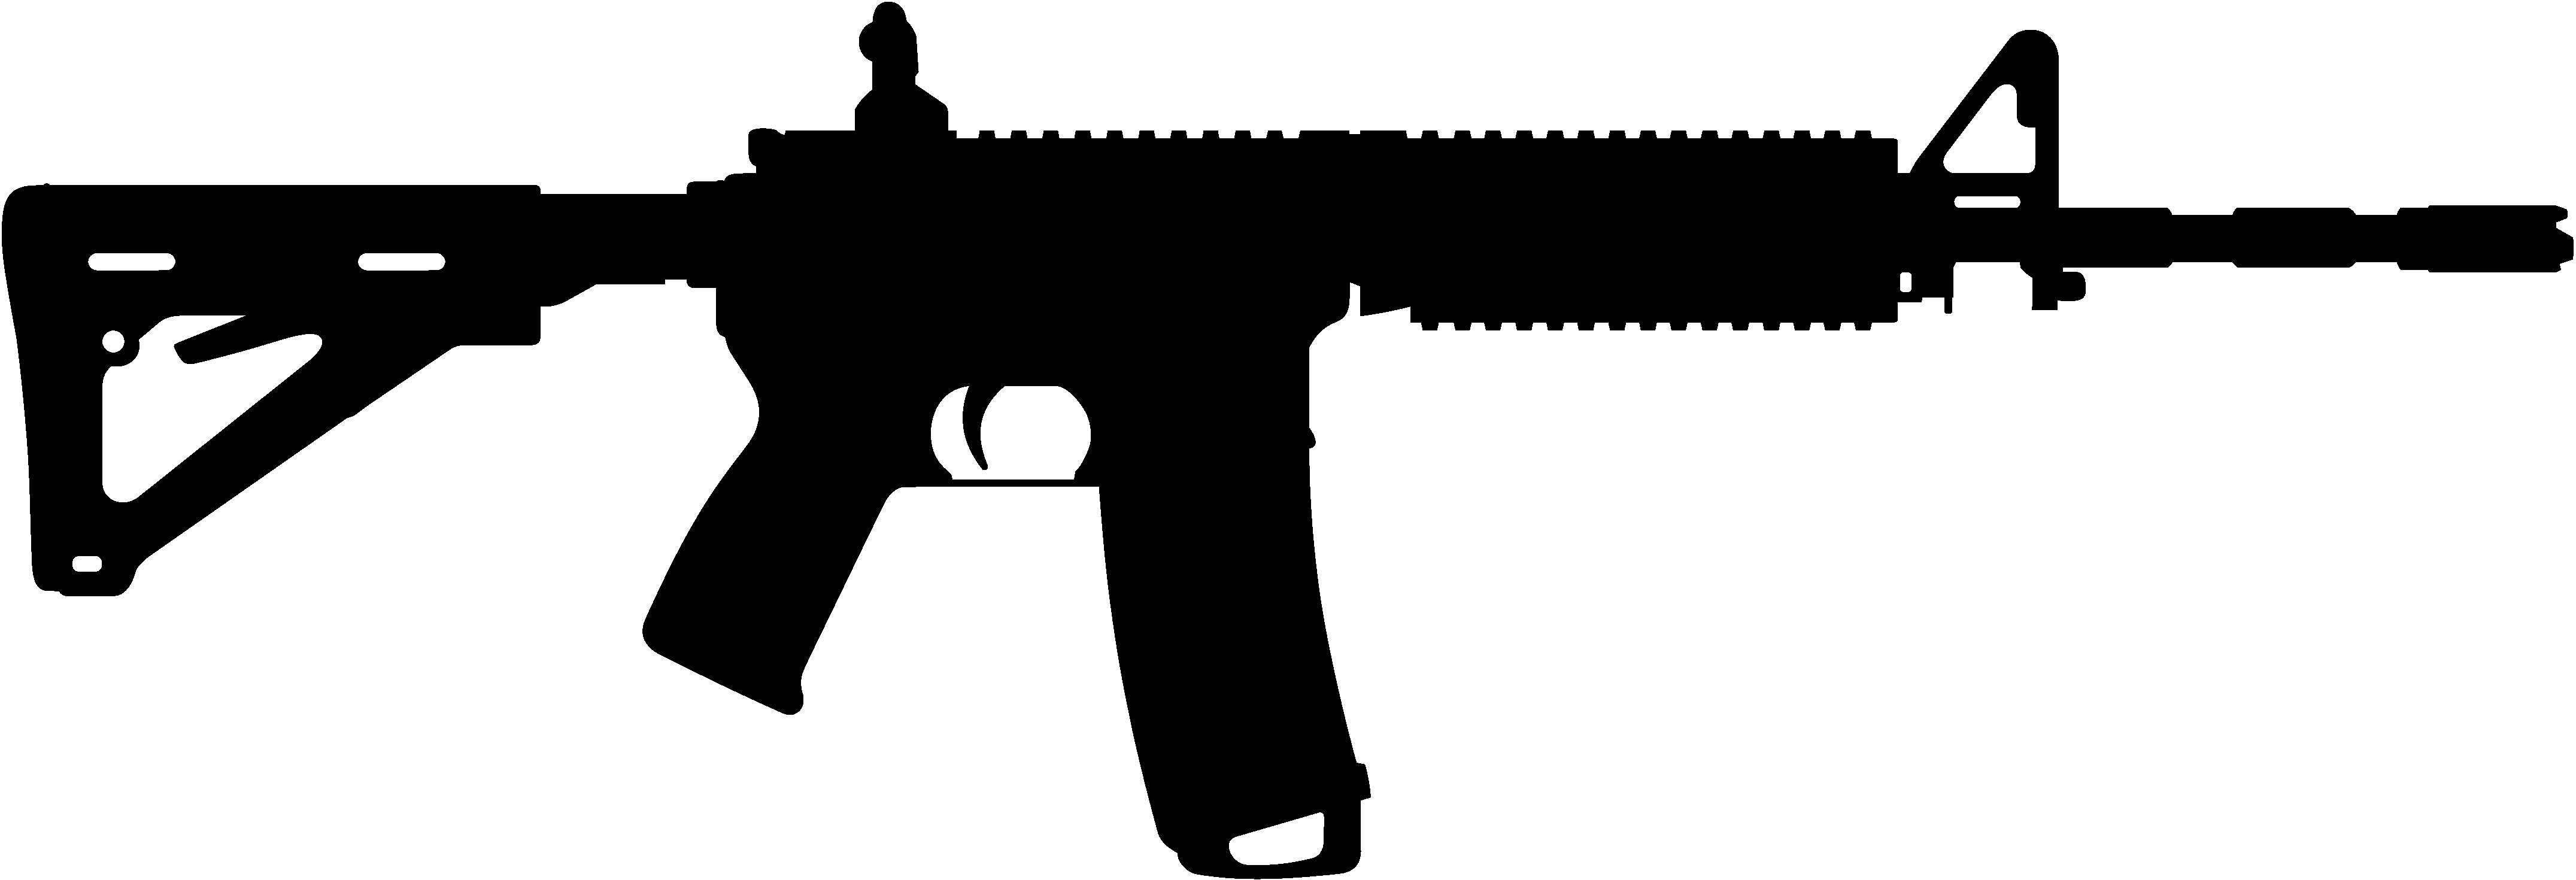 Ar15 parts clipart clipart images gallery for free download.